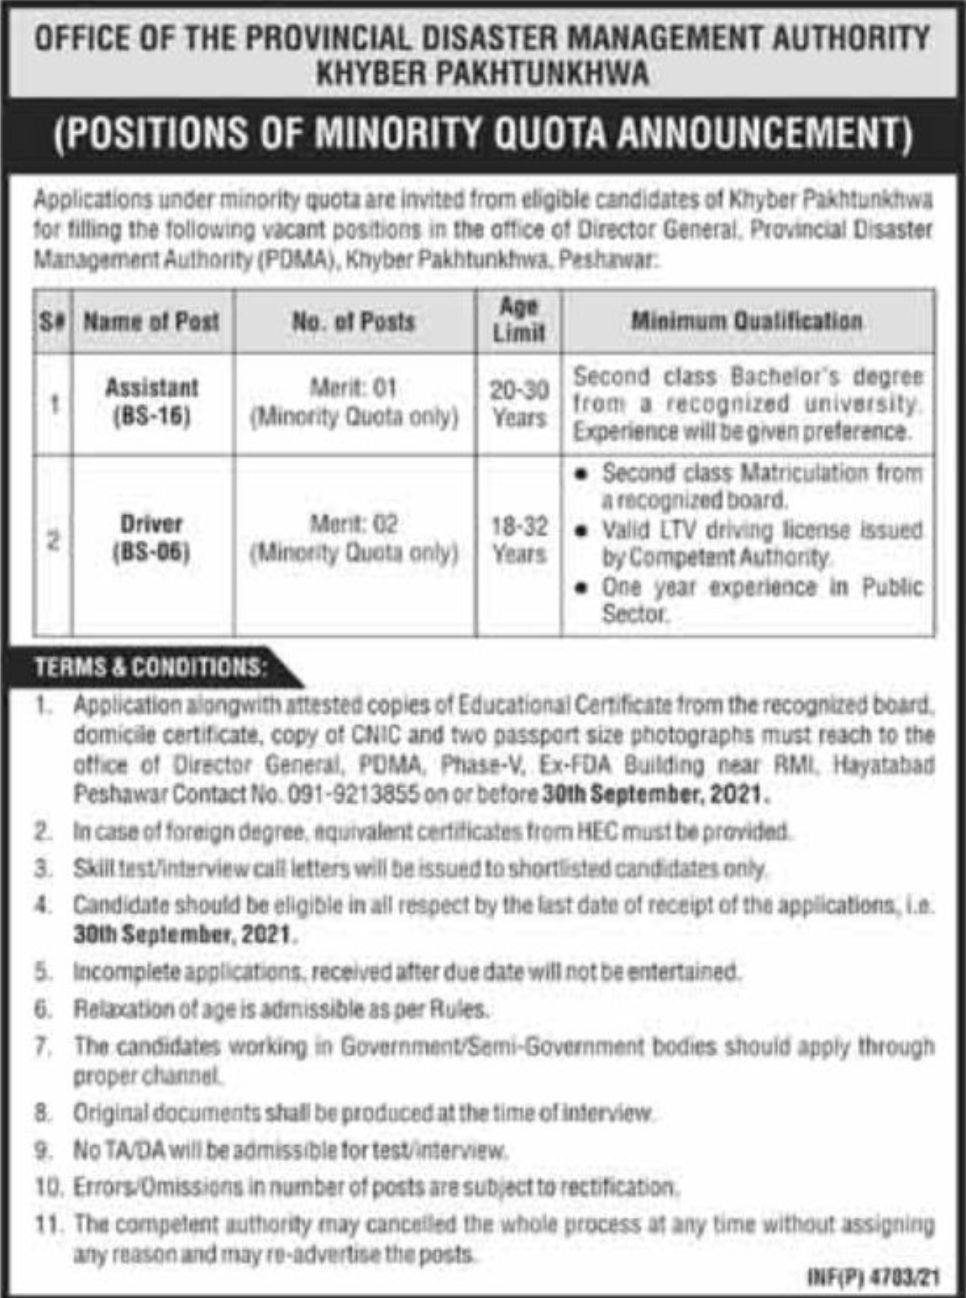 Provincial Disaster Management Authority Khyber Pakhtunkhwa Vacancies 2021 – Dailyjobs.pk 3